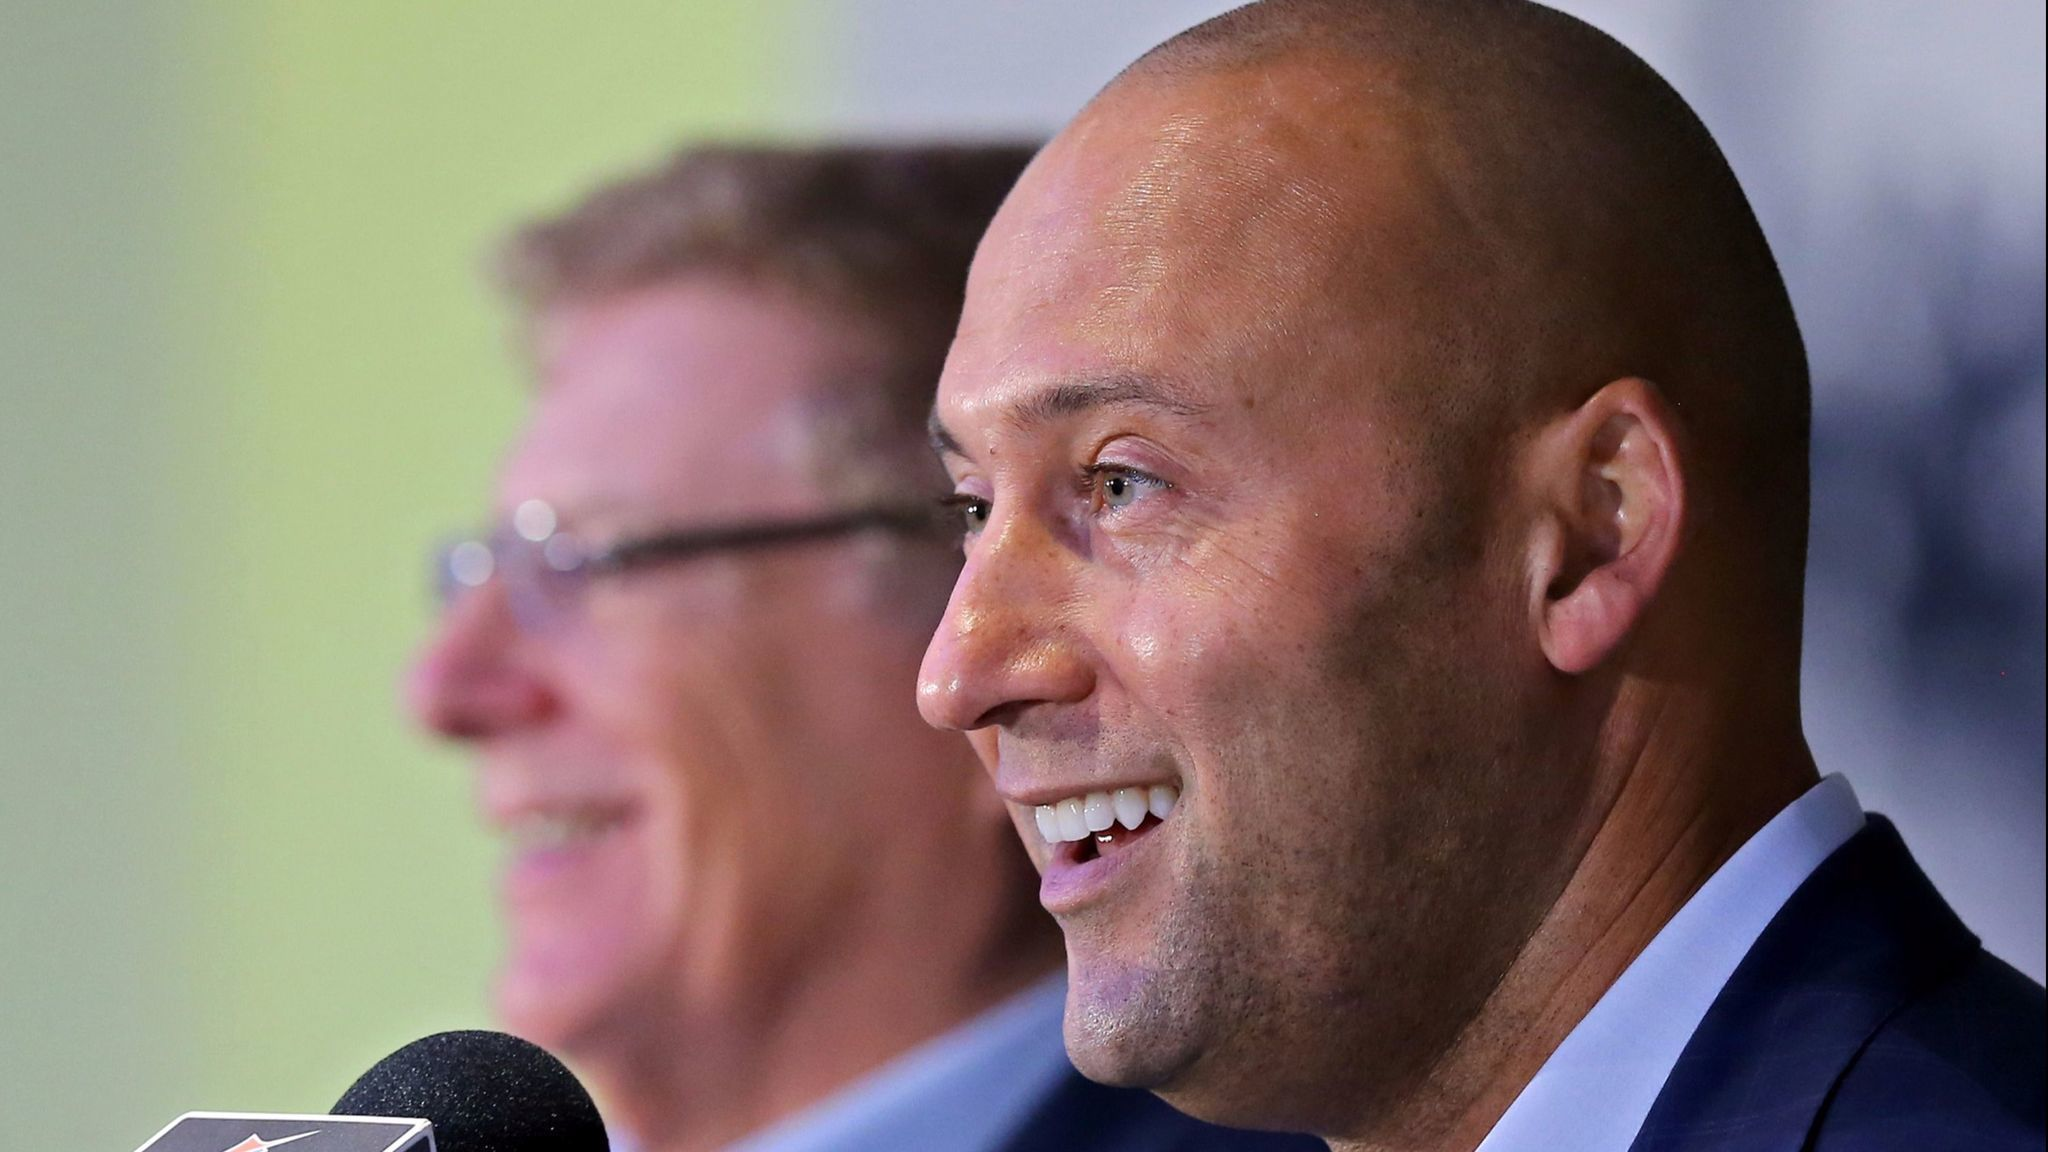 Fl-sp-marlins-jeter-first-hire-20171009